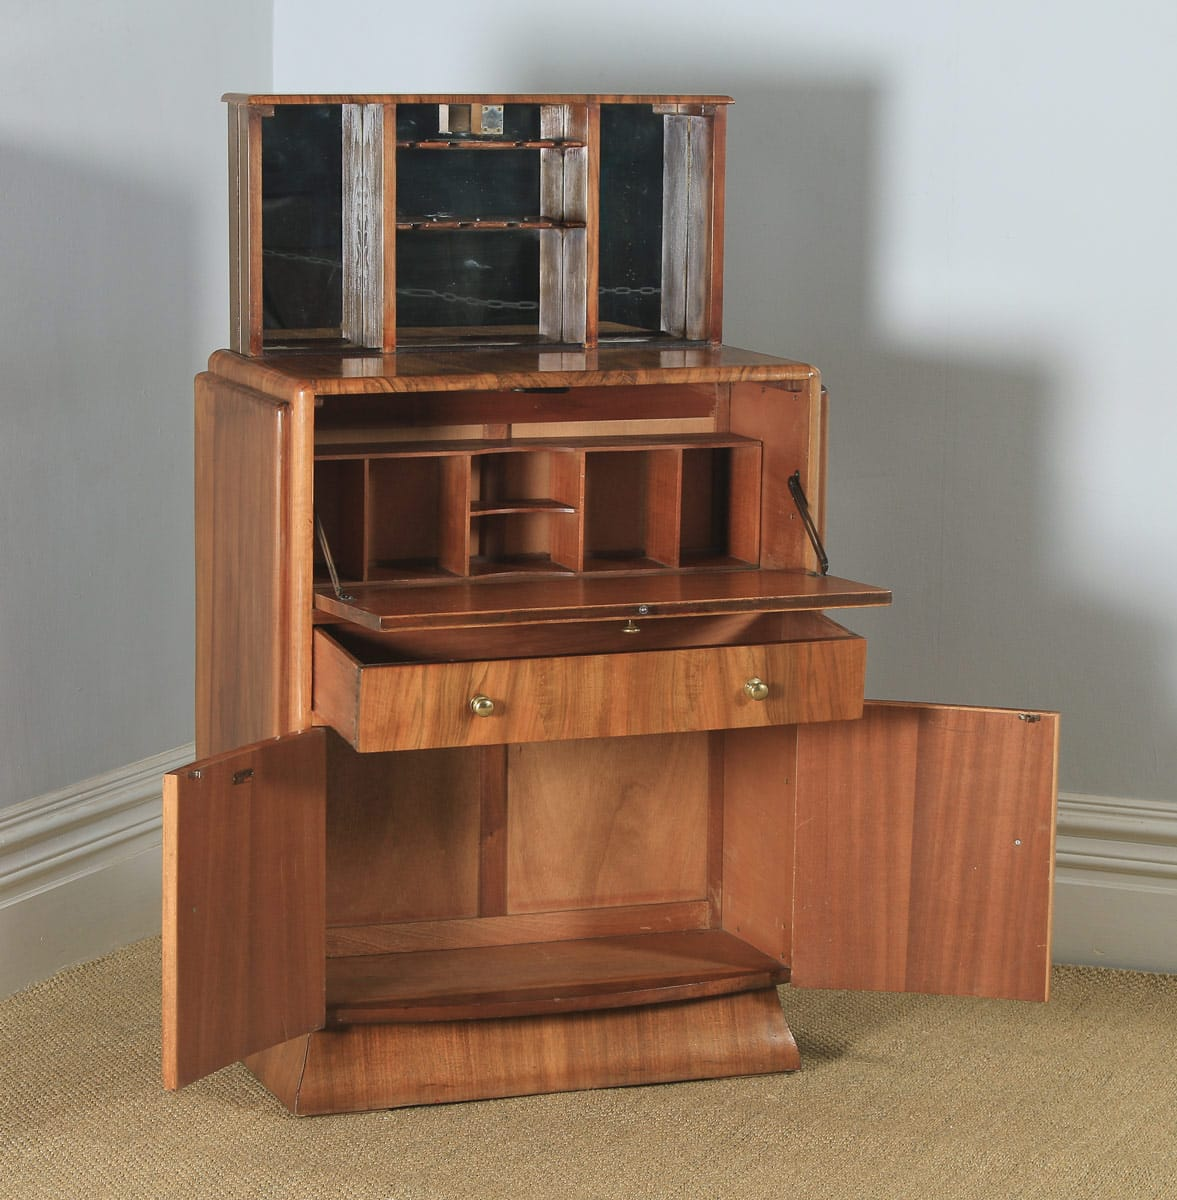 Antique English Art Deco Burr Walnut Cocktail Bow Front Cabinet by F.H. Marshall (Circa 1940) - yolagray.com